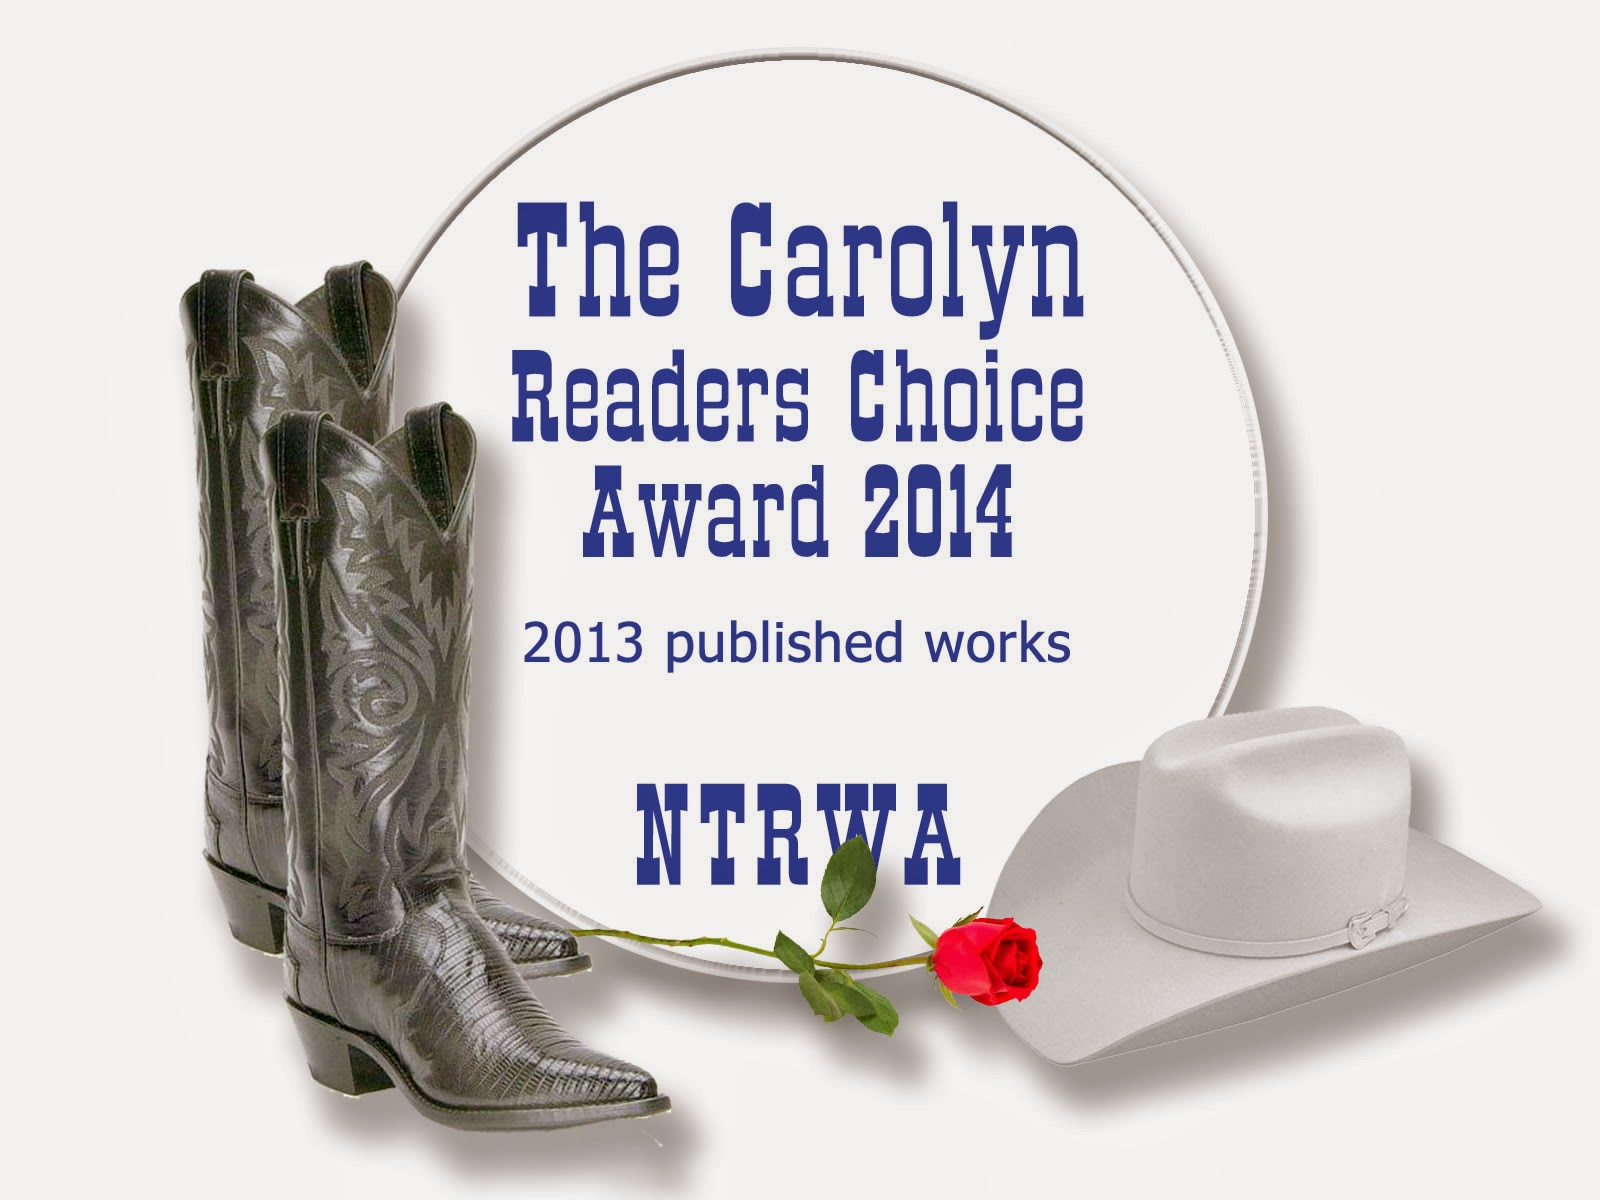 The Carolyn Readers Choice award logo